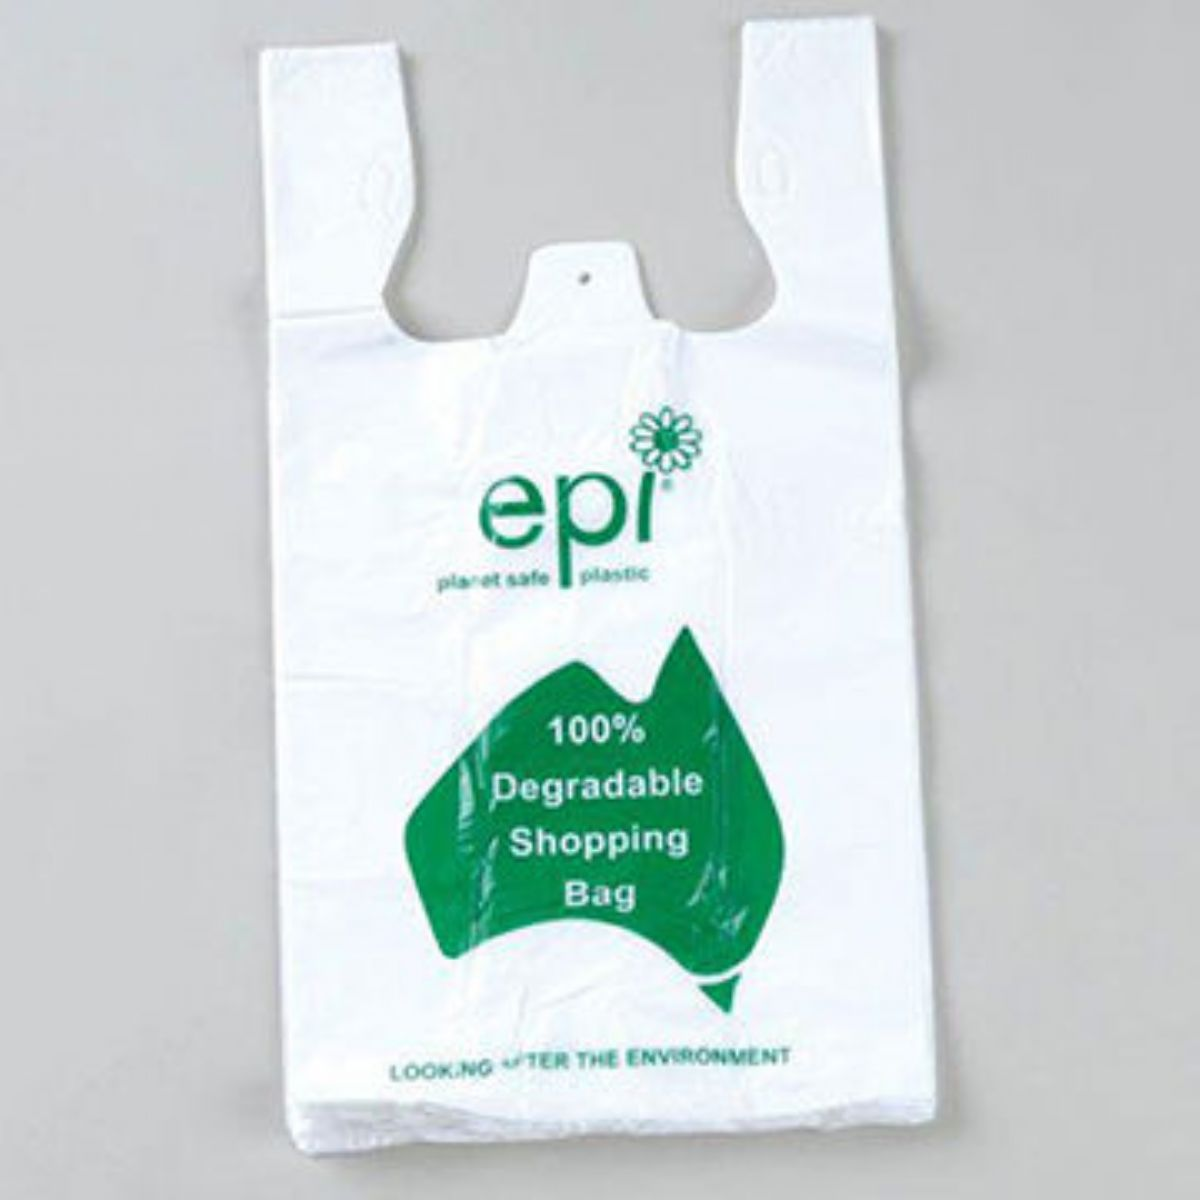 SOLUBLE IN NATURE (EPI)